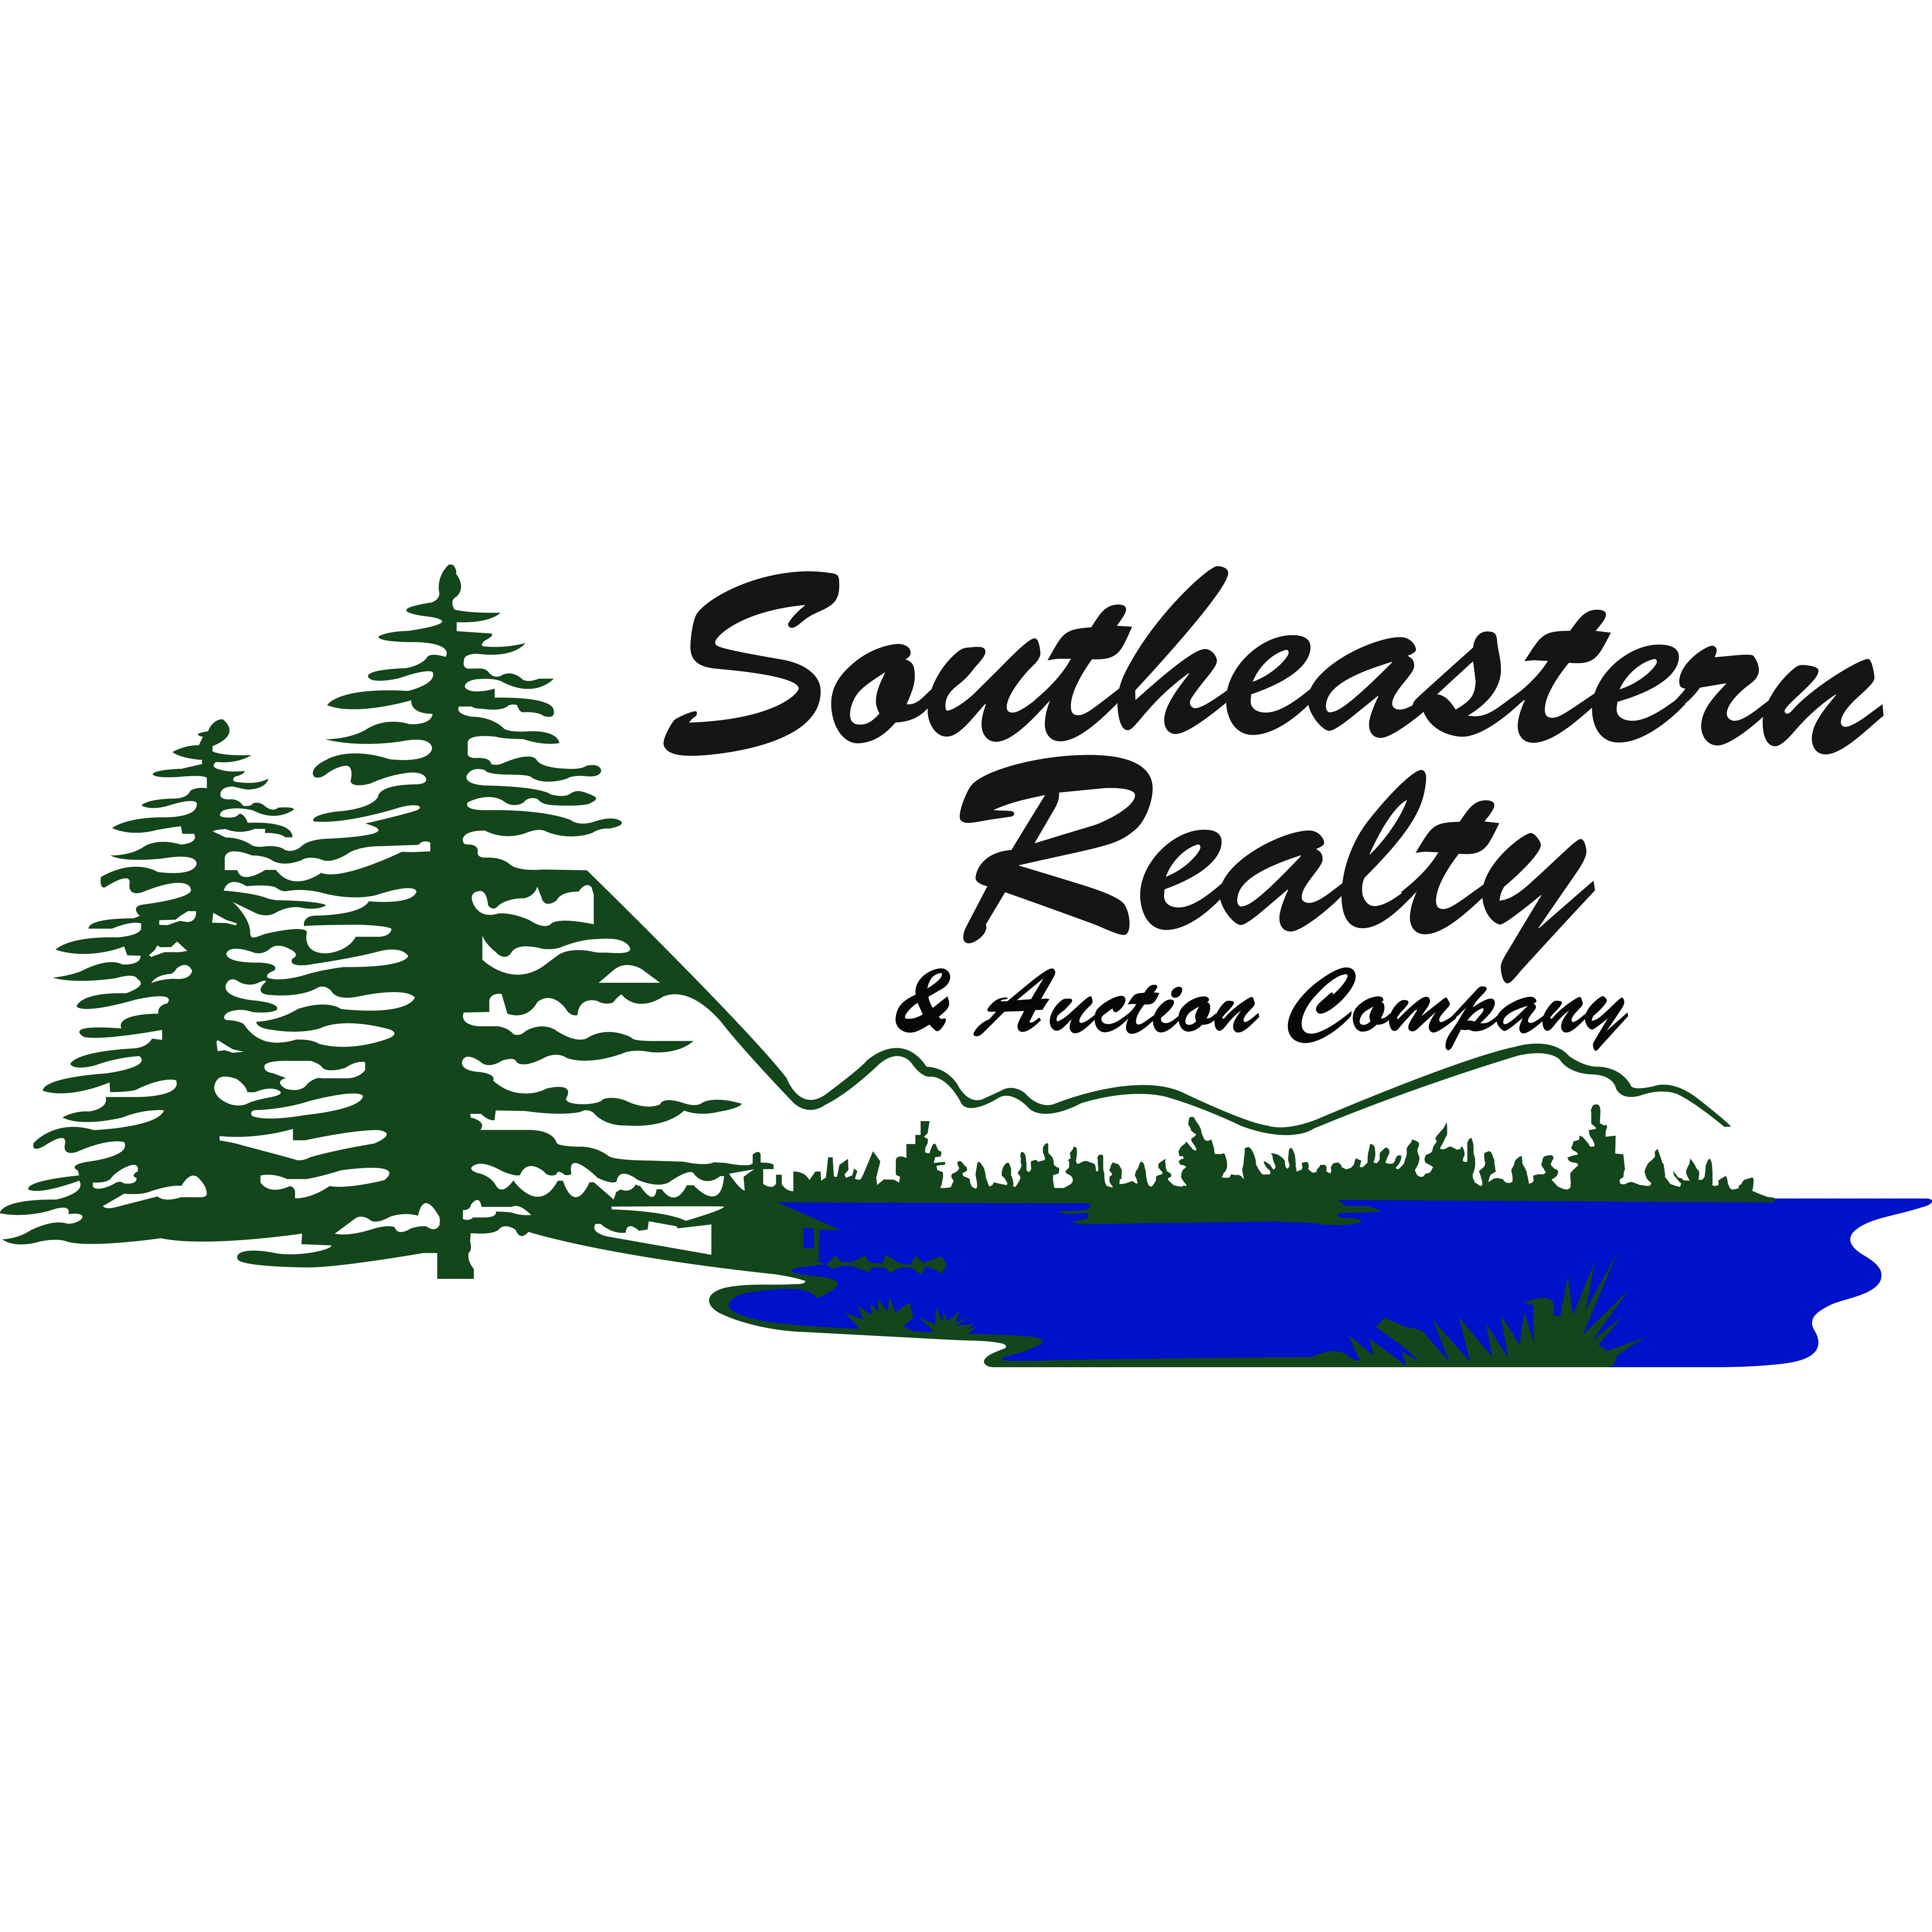 Southeastern Realty & Auction Company